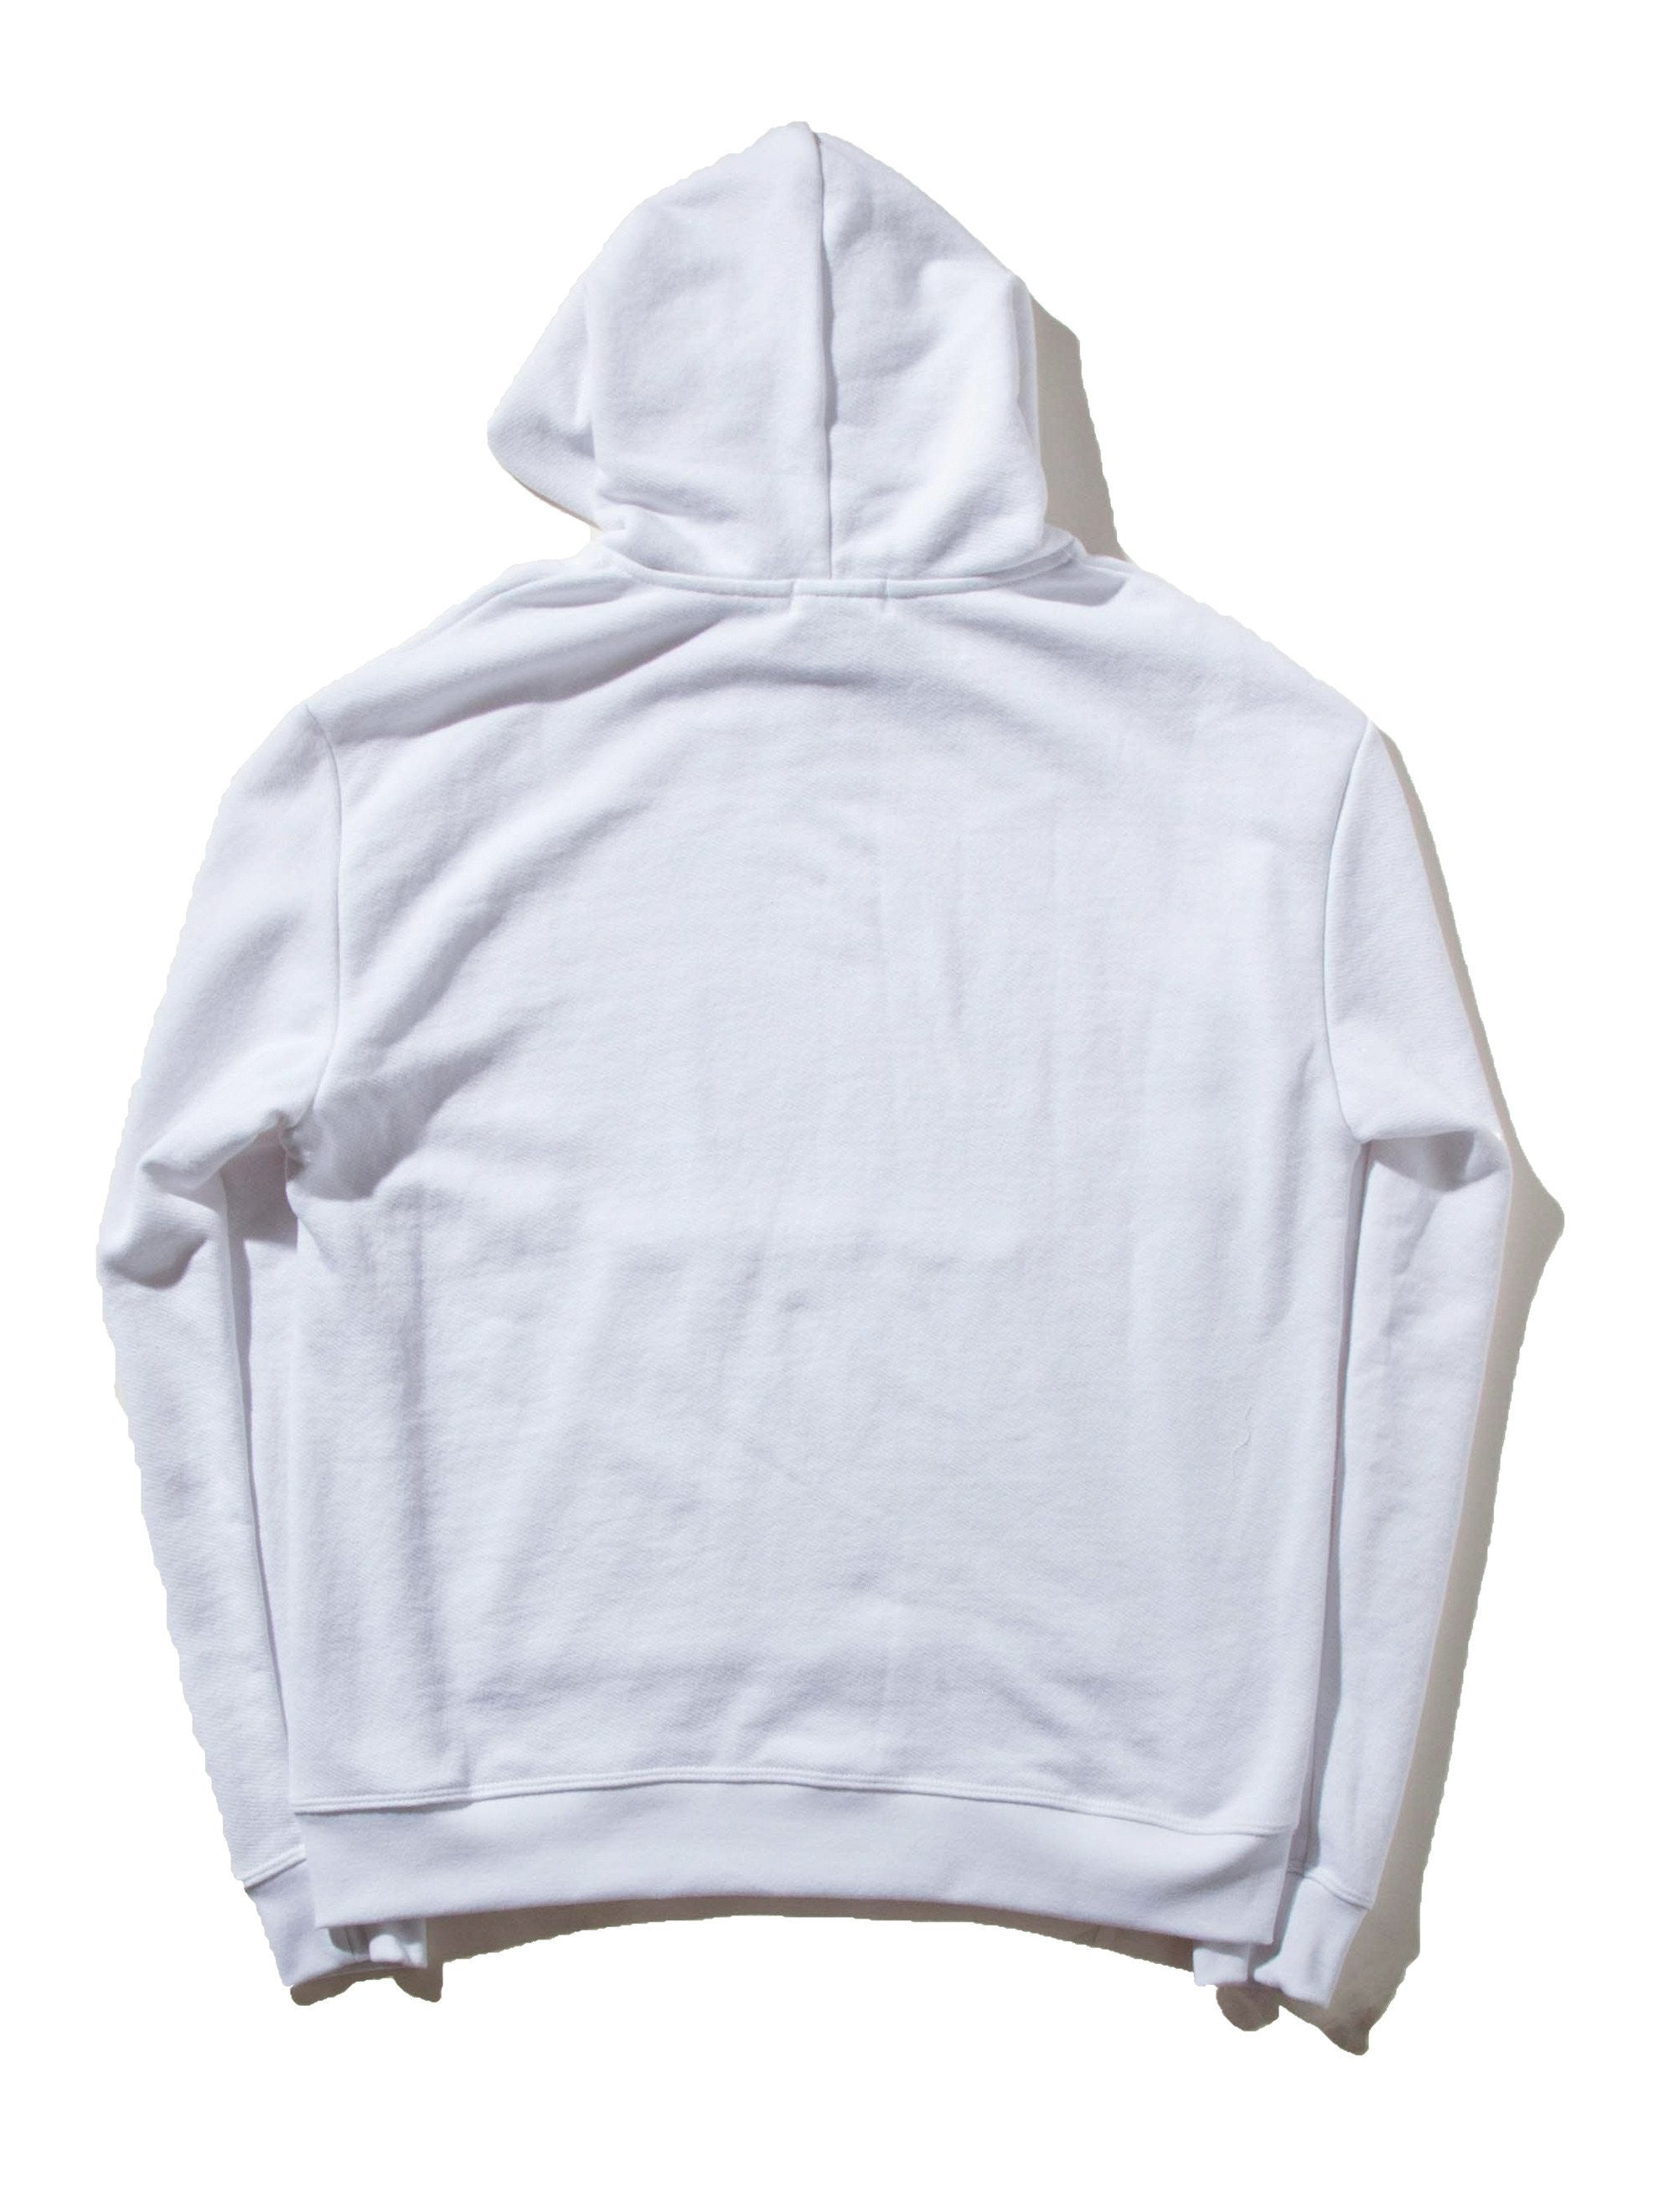 White Oversized Cropped Hooded Sweatshirt (TOURNAMENT) 8